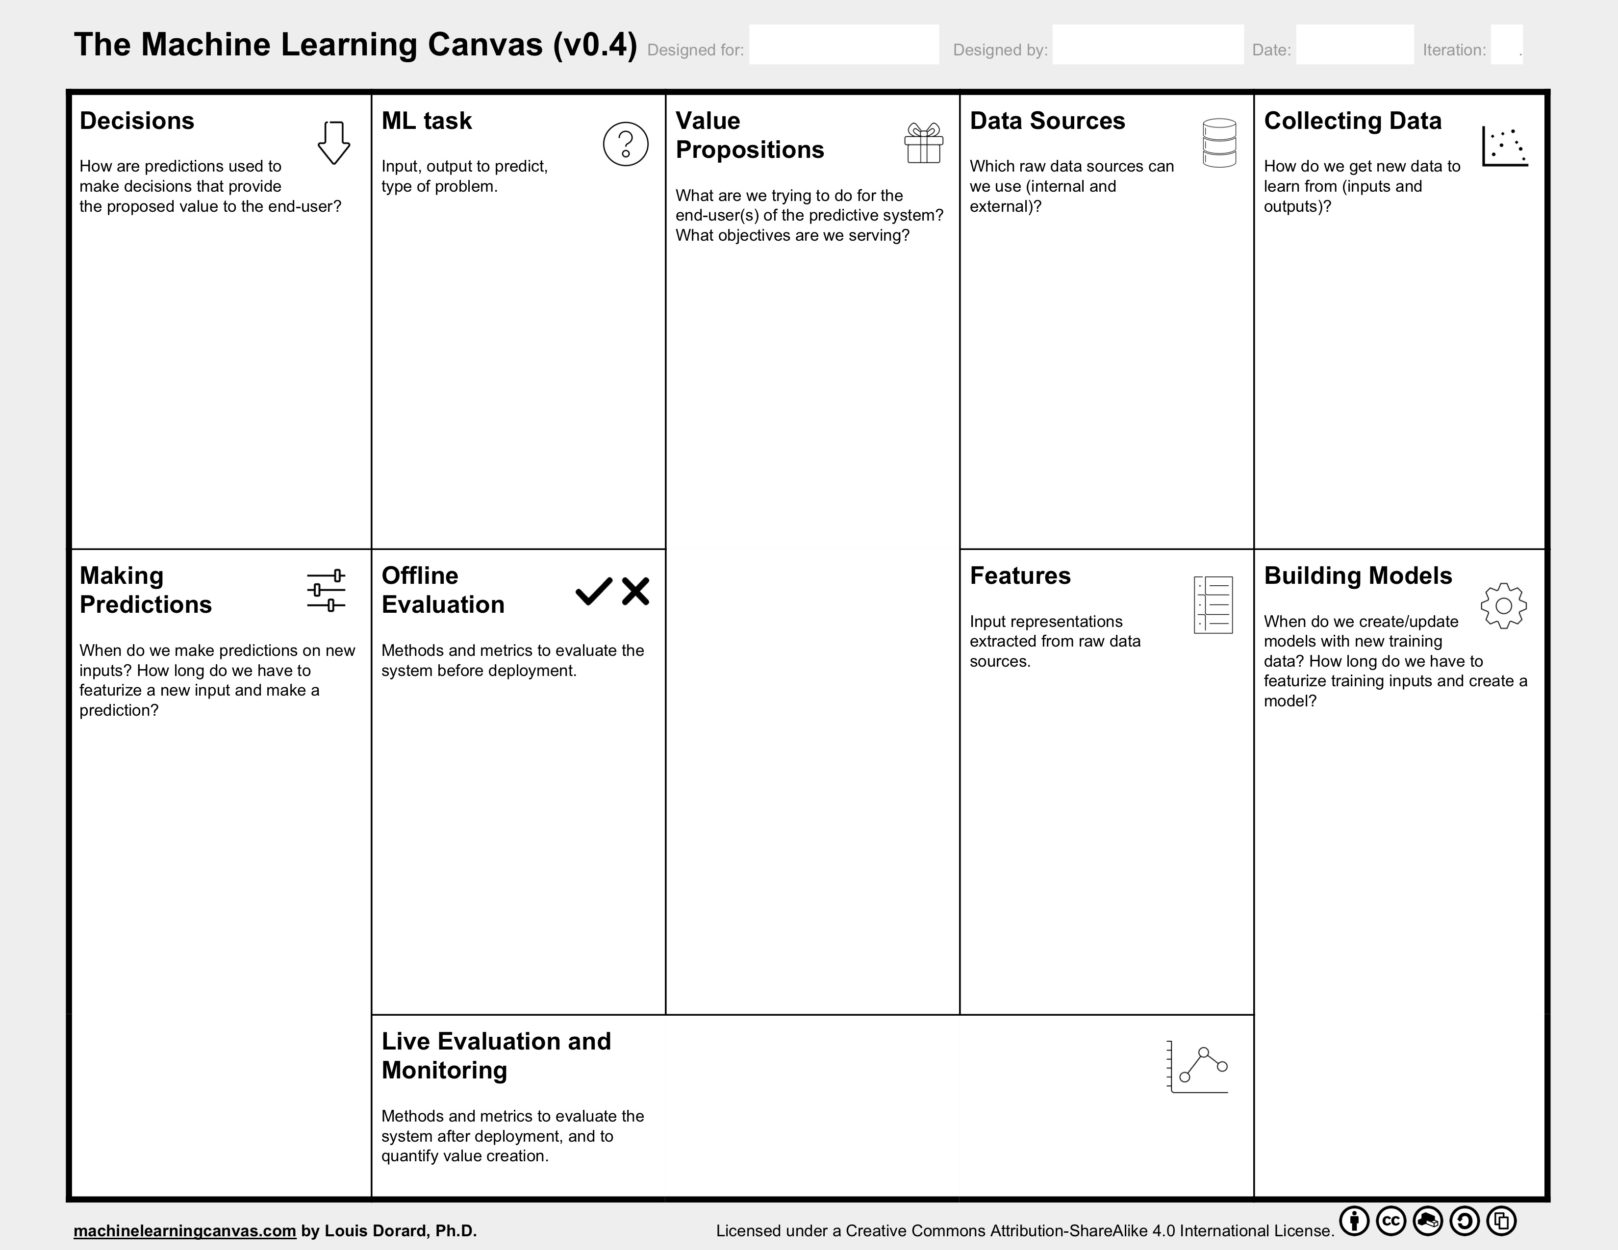 The Machine Learning Canvas